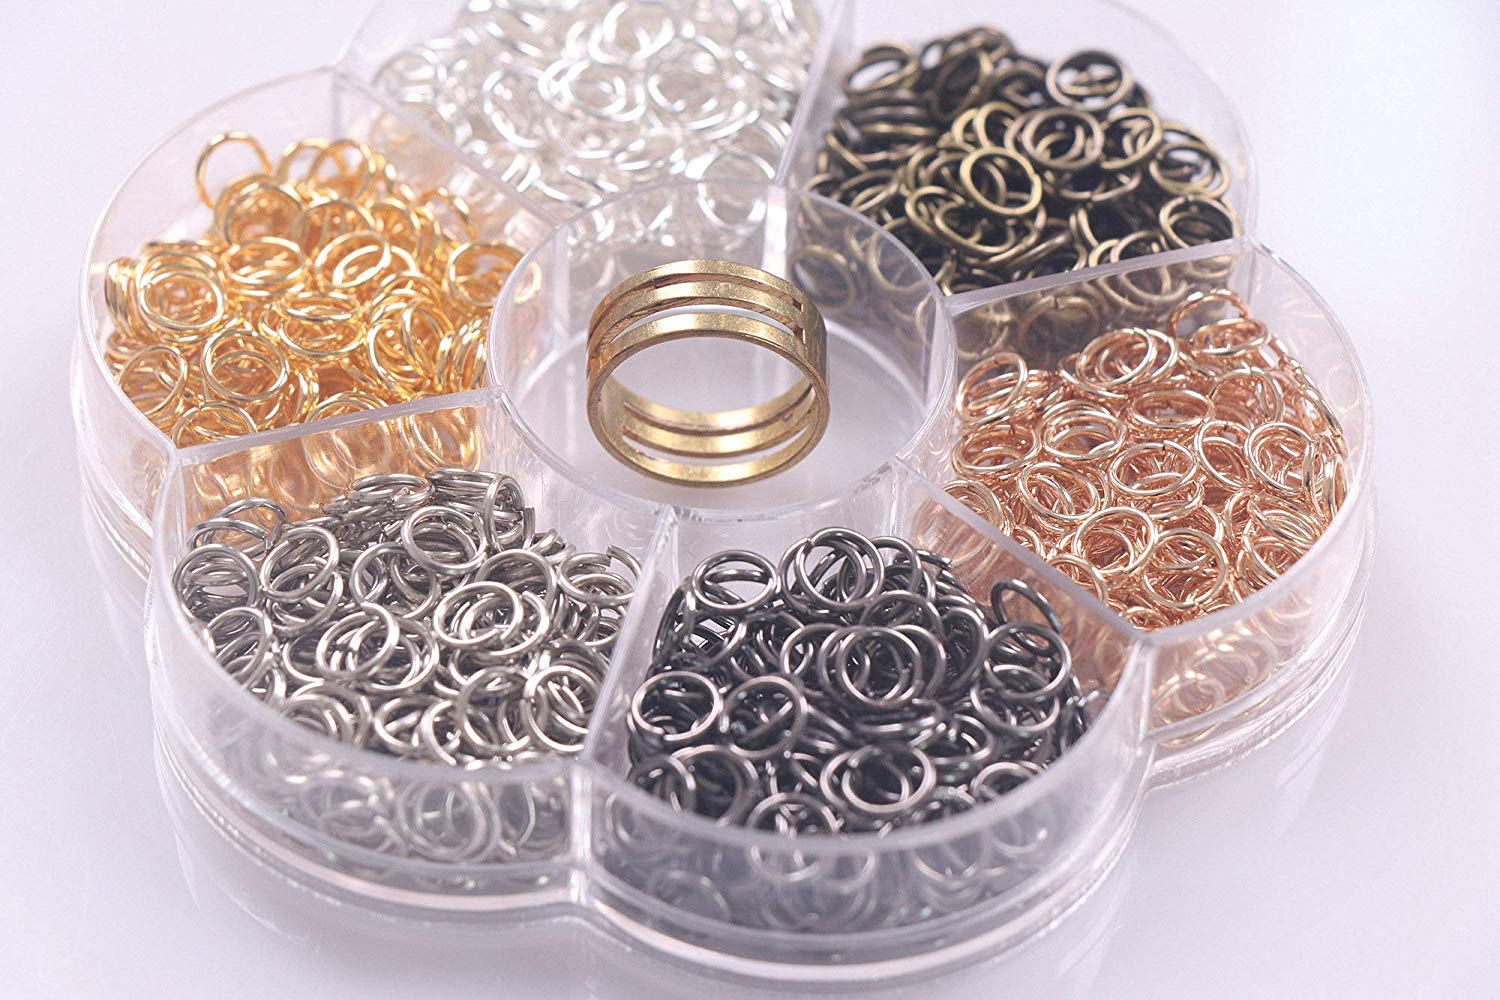 0.23//6mm YAKA1800Pcs 6mm1Box 6 Colors Open Jump Ring,Ring Jewelry Keychain for Jewelry Making Accessories,1Pcc Jump Ring Open//Close Tool and 1Pcs Clear Box